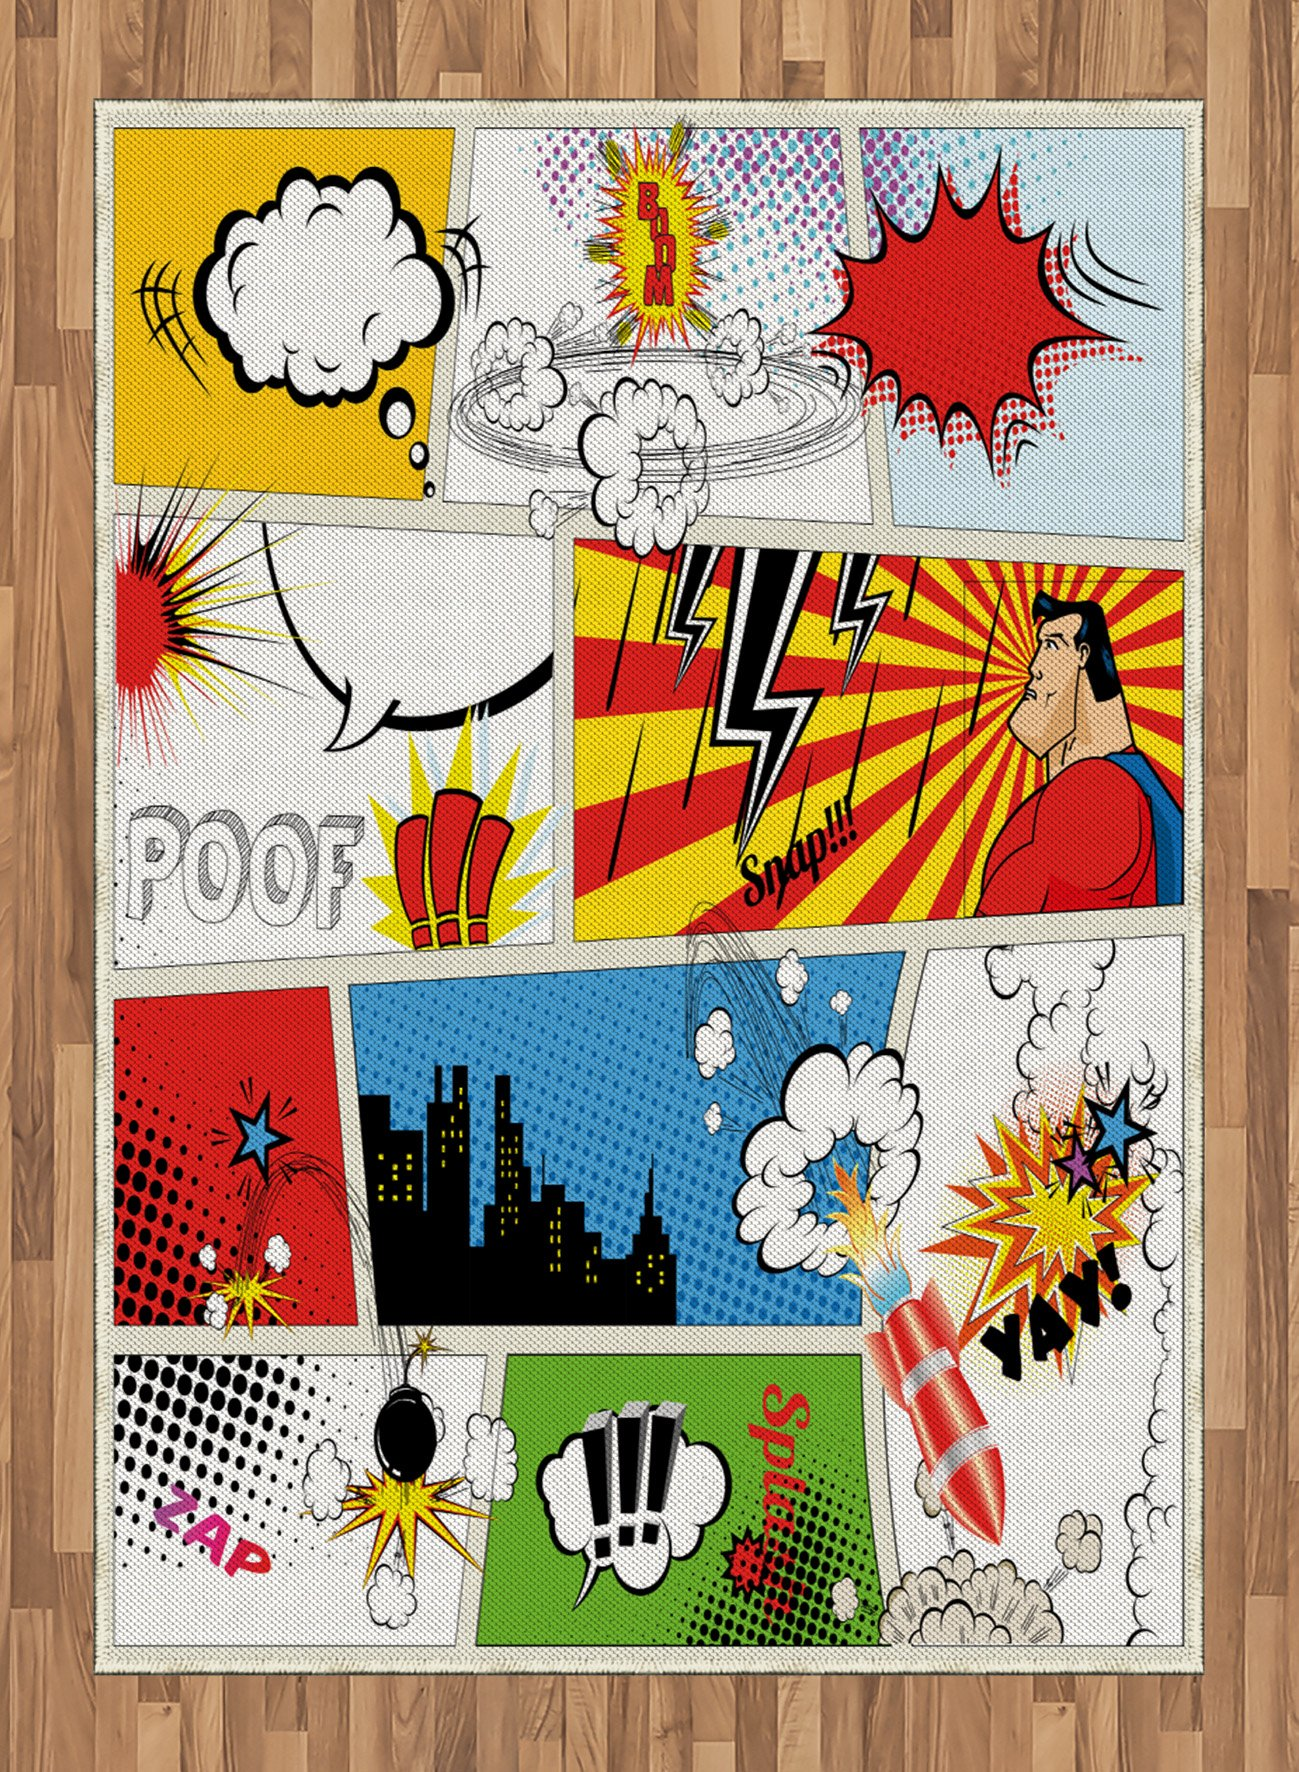 Superhero Area Rug by Lunarable, Comics Template Fiction Fantasy Retro Speech Bubbles Expressions Effects Print, Flat Woven Accent Rug for Living Room Bedroom Dining Room, 5.2 x 7.5 FT, Multicolor